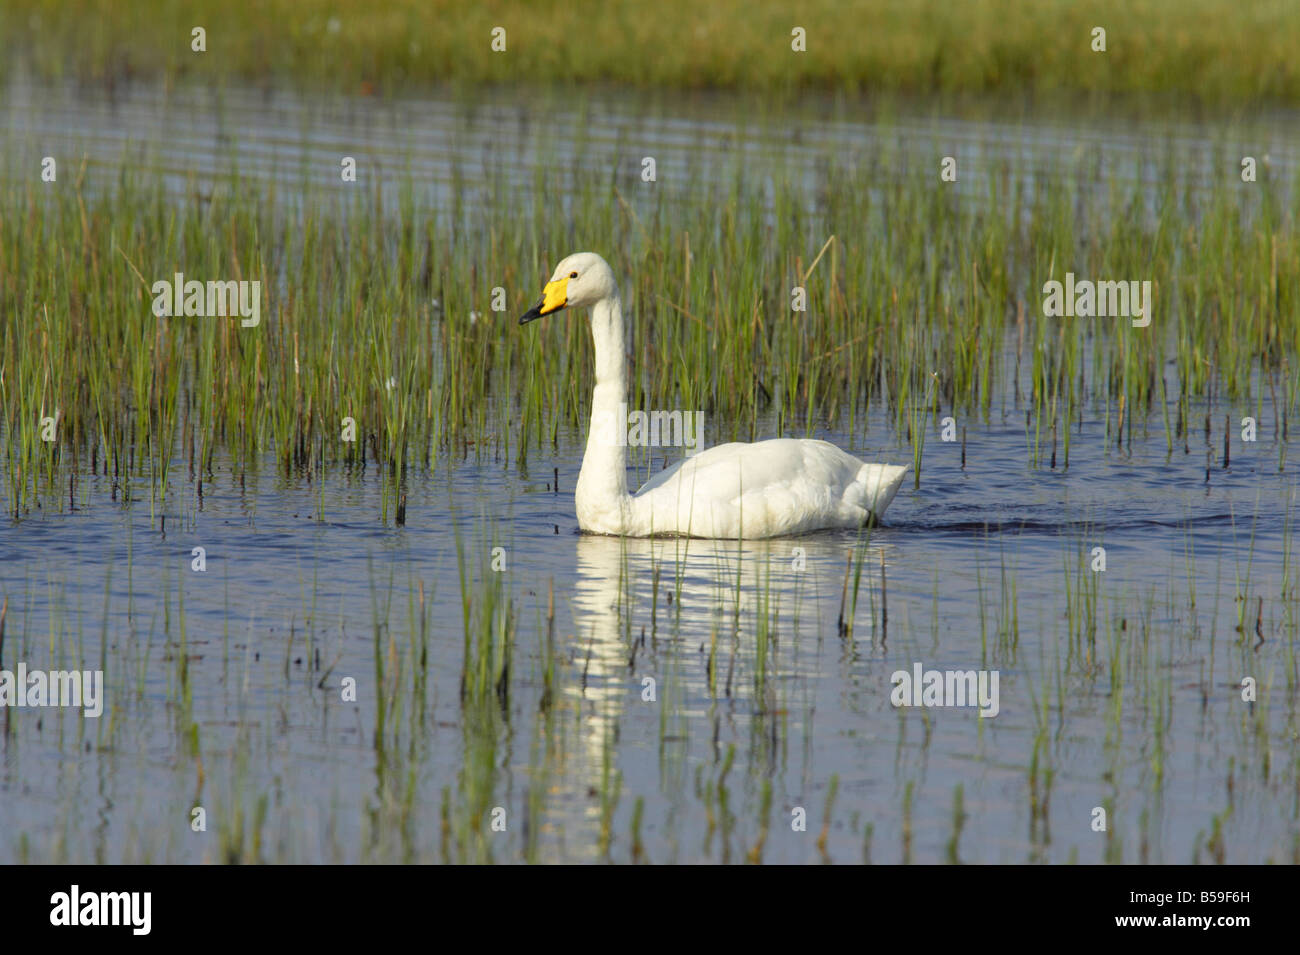 Whooper Swan On small loch in early Summer Cygnus cygnus South Uist Outer hebrides Scotland UK BI016773 - Stock Image